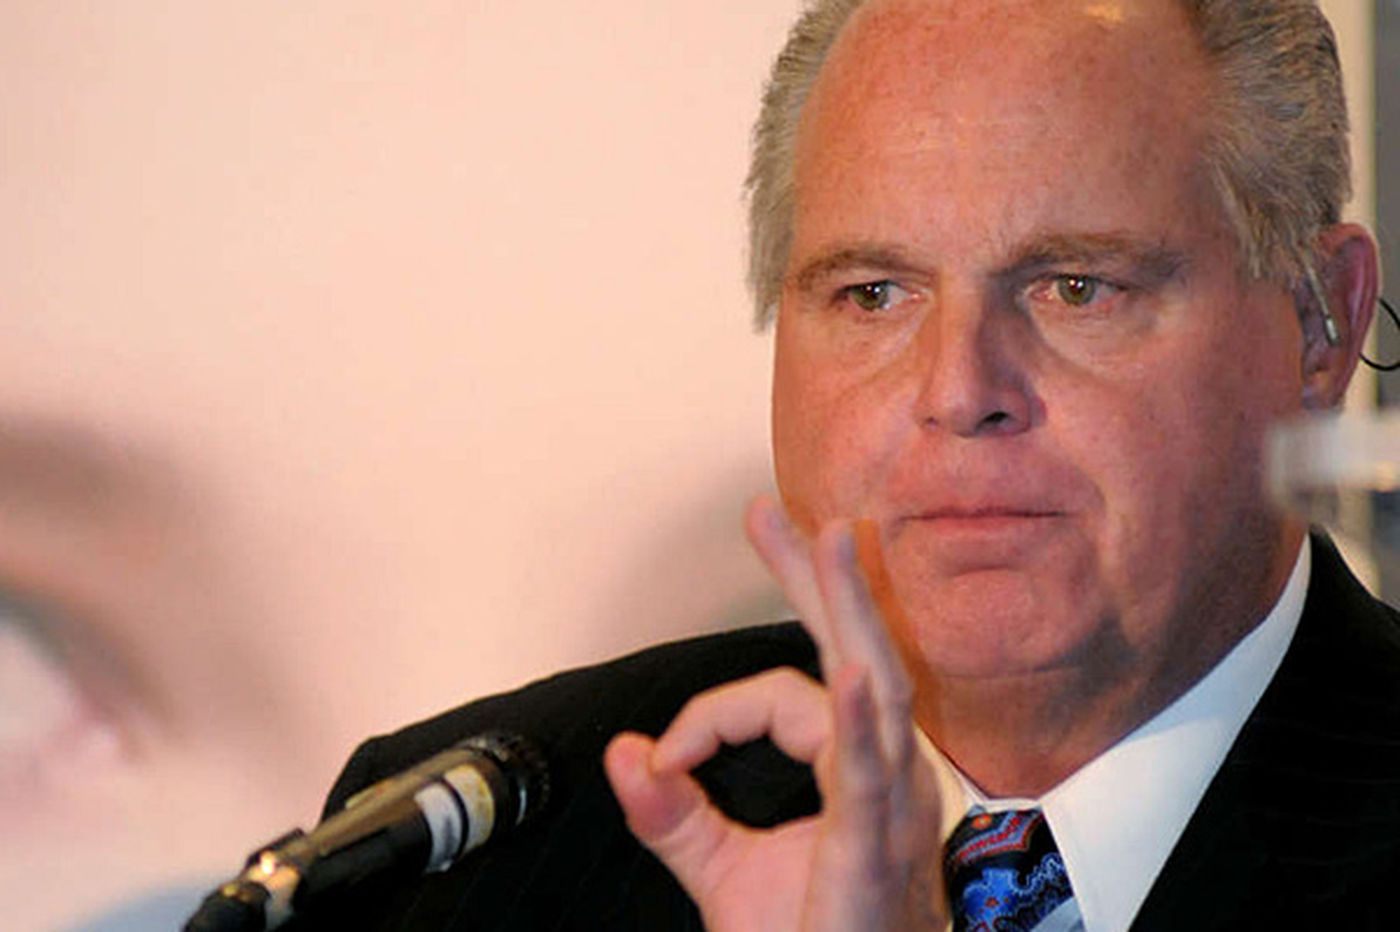 Rush Limbaugh could return to WPHT